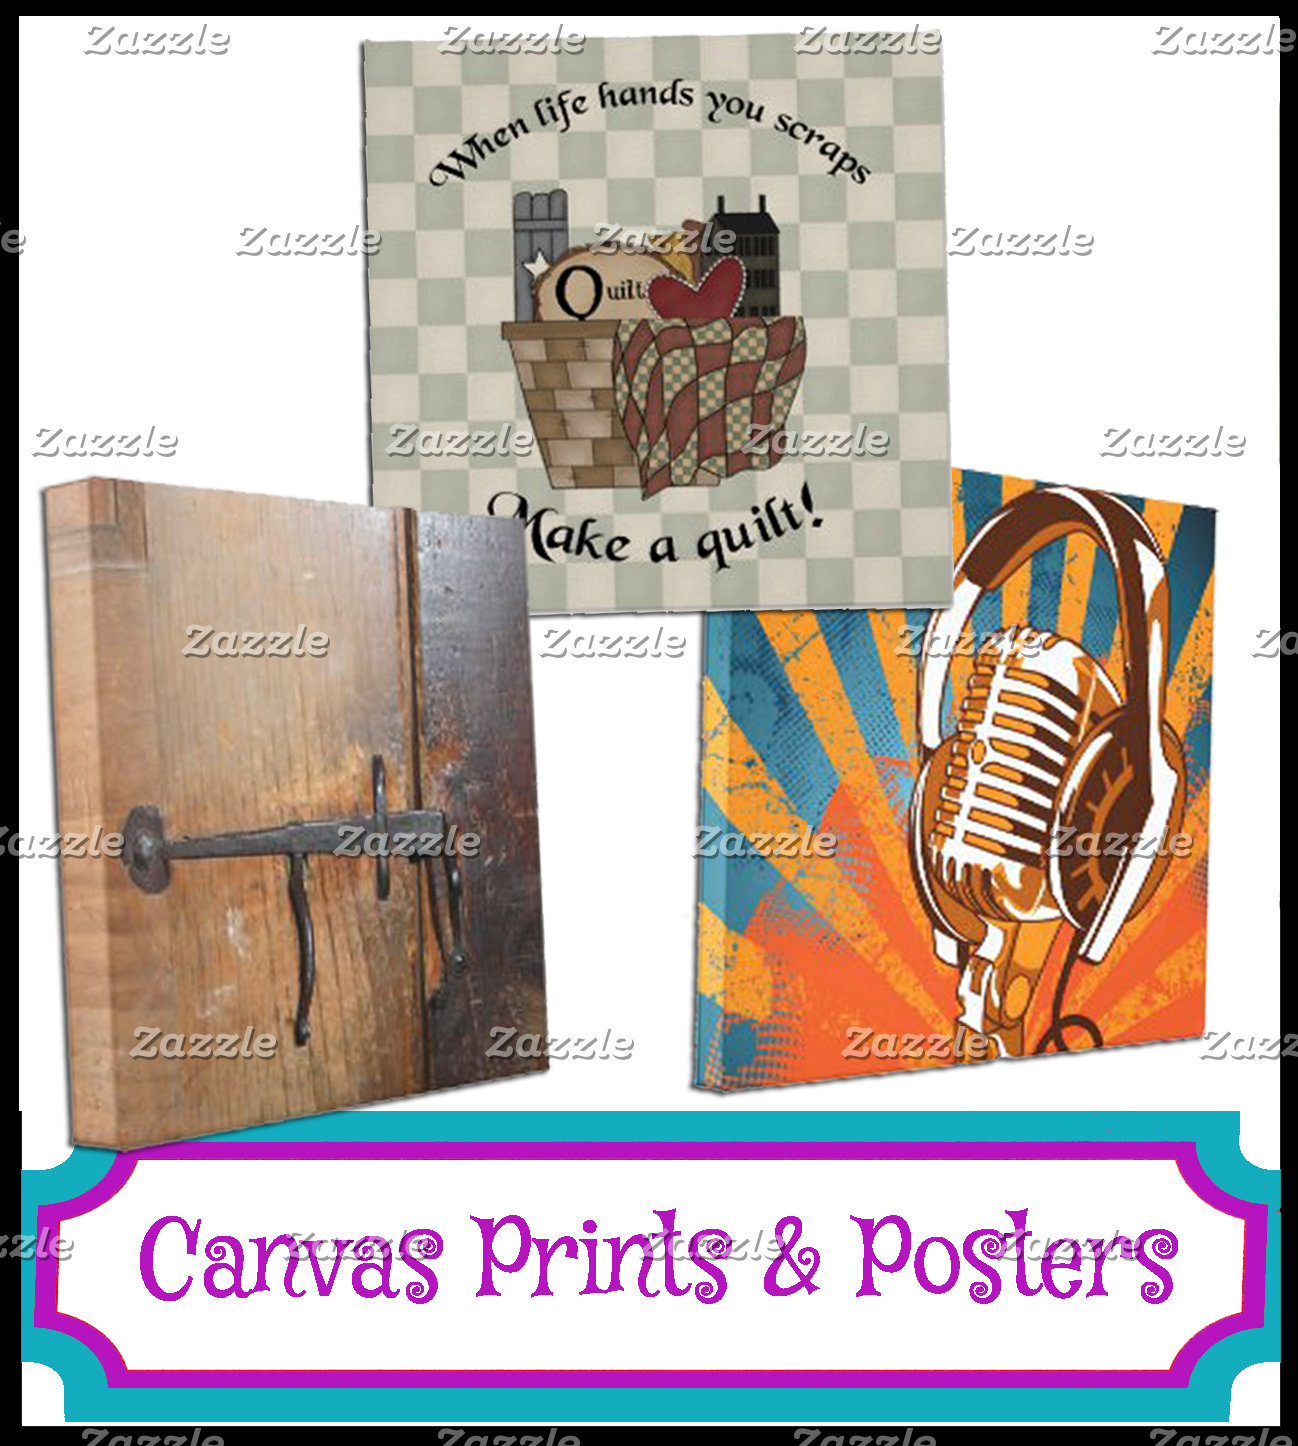 CANVAS PRINTS & POSTERS